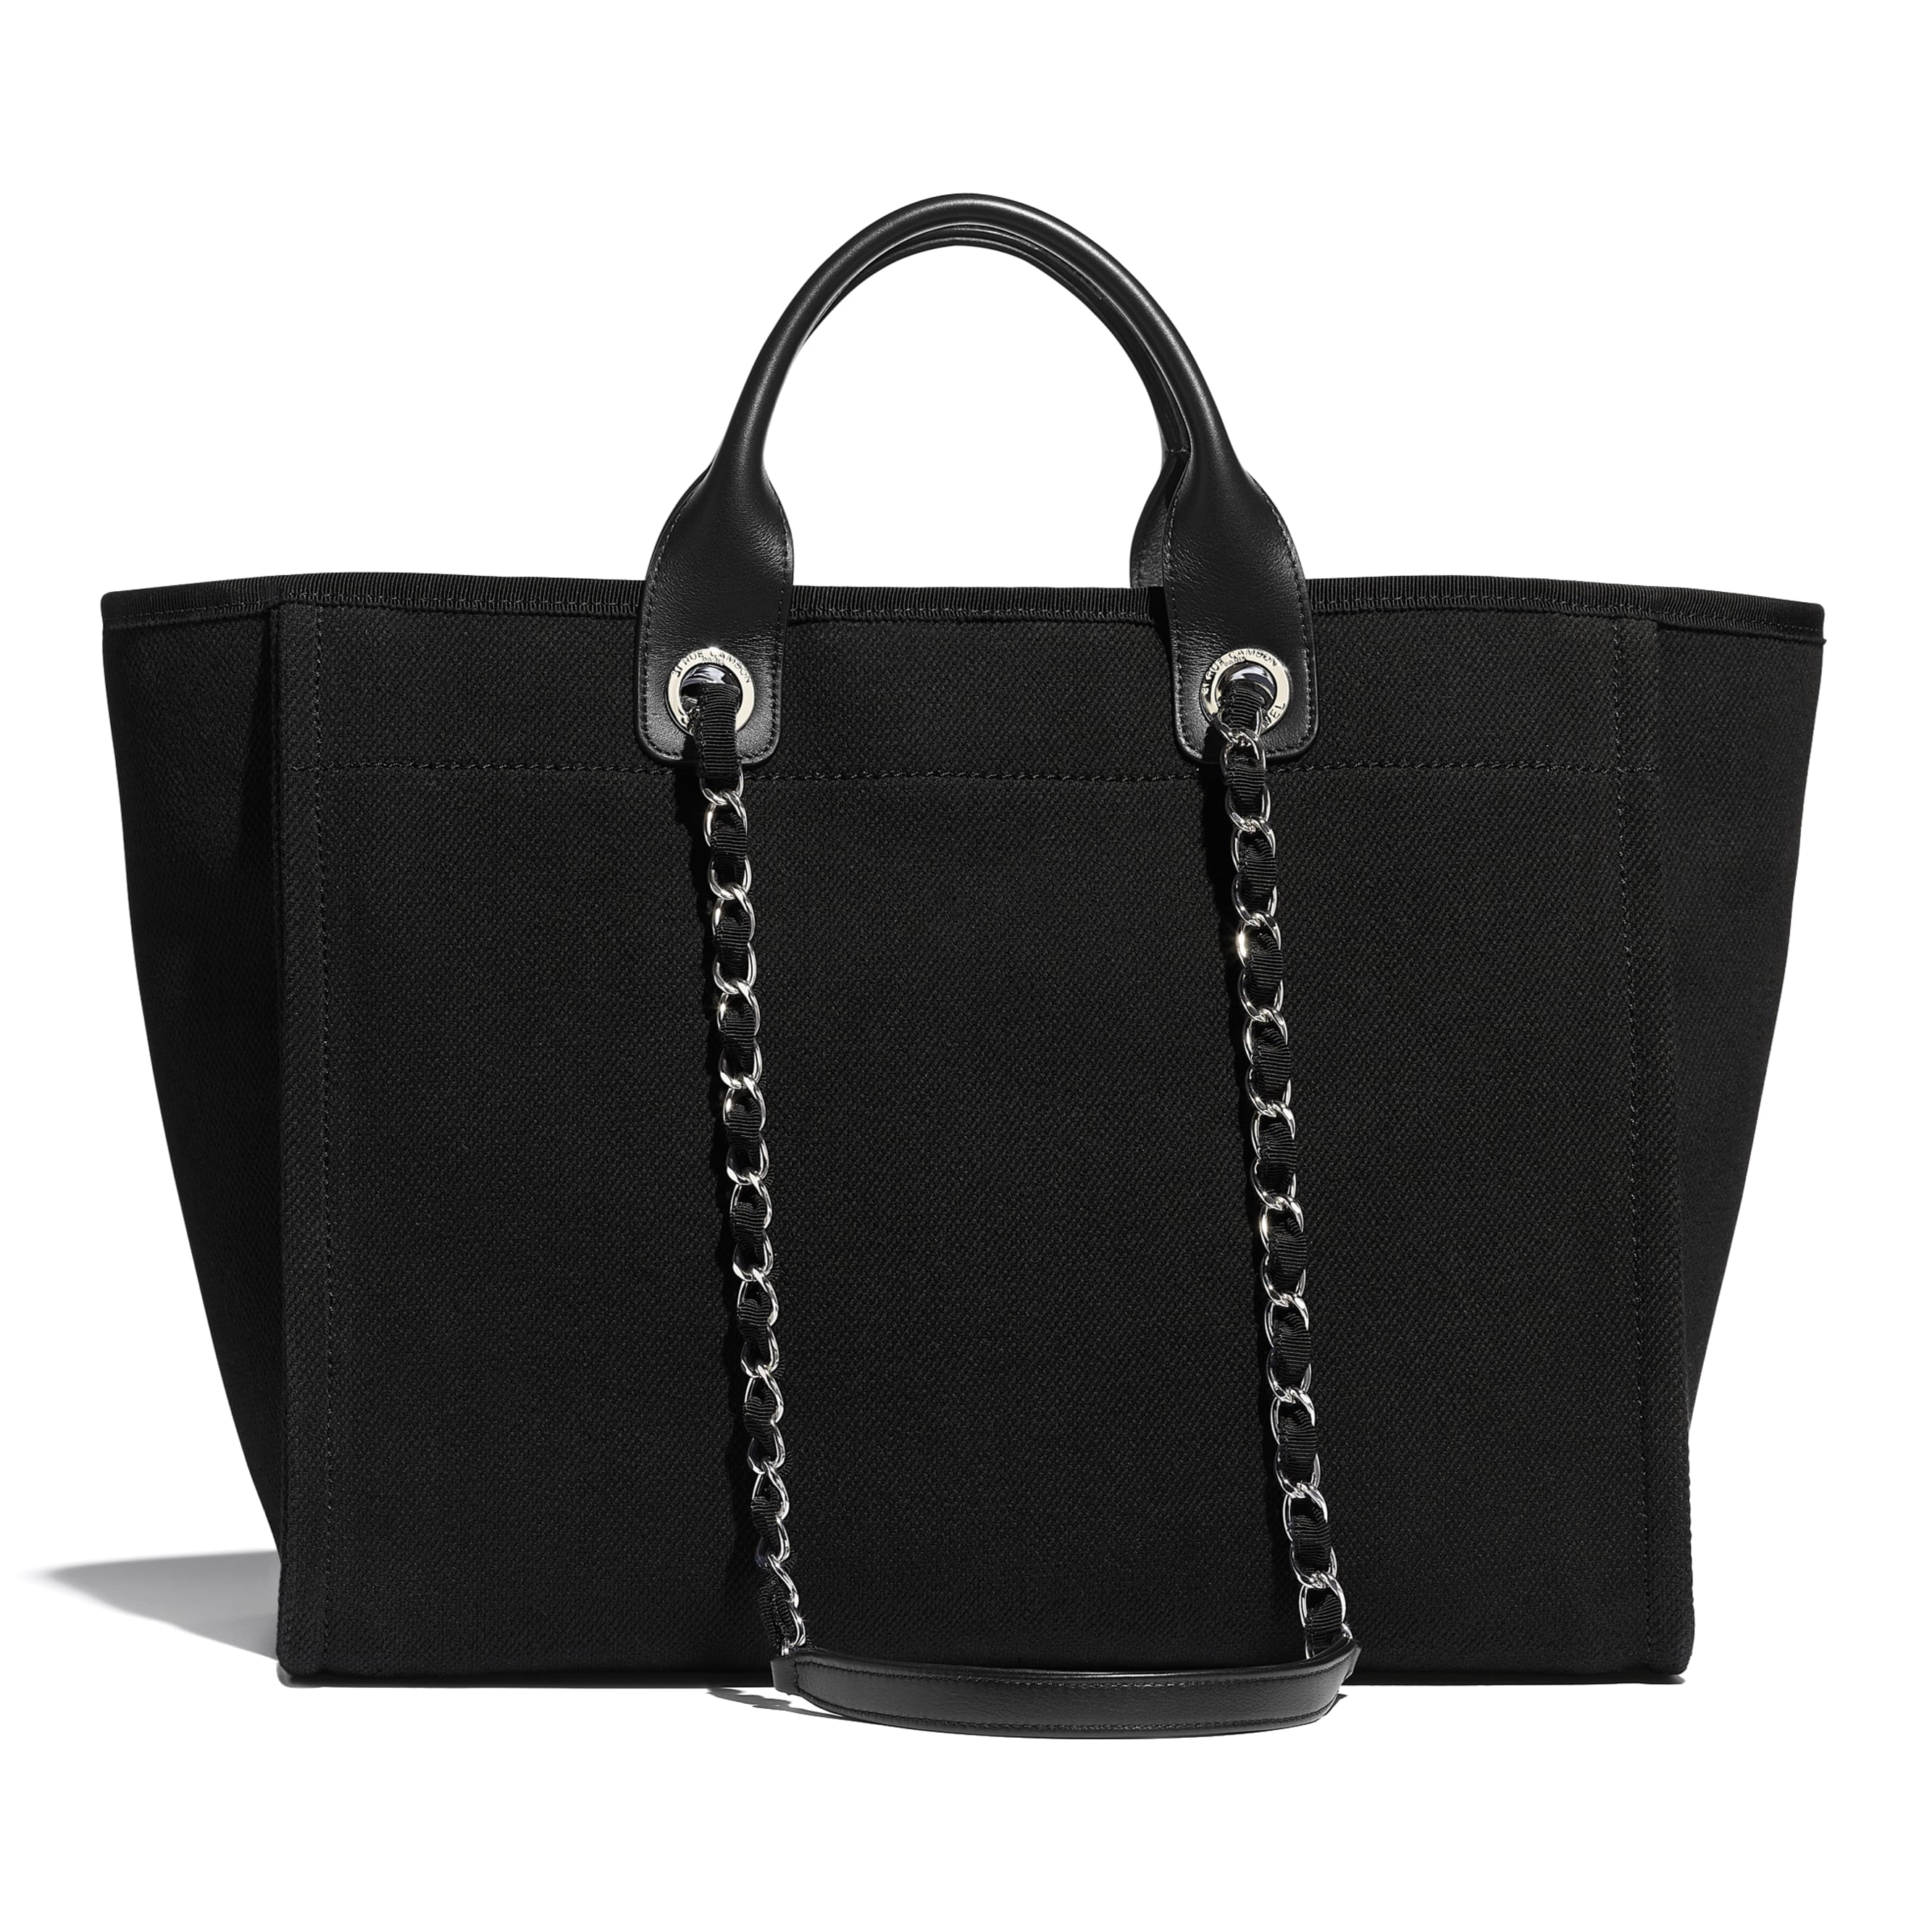 Large Tote - Black - Mixed Fibers, Imitation Pearls, Silver-Tone Metal - CHANEL - Alternative view - see standard sized version